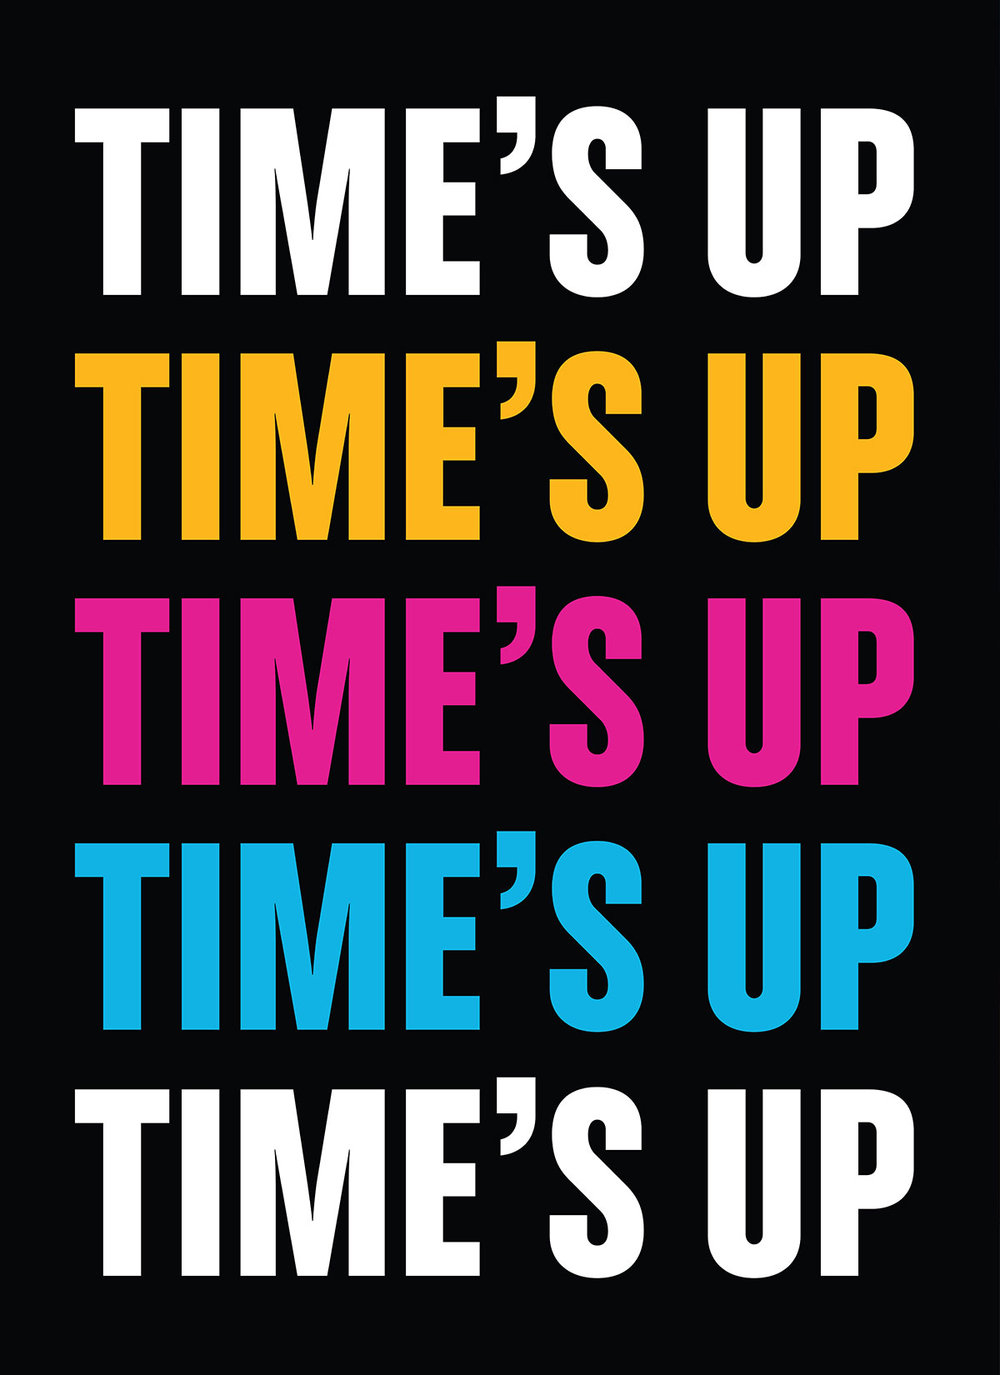 Times_Up_Posters_r3-06.jpg